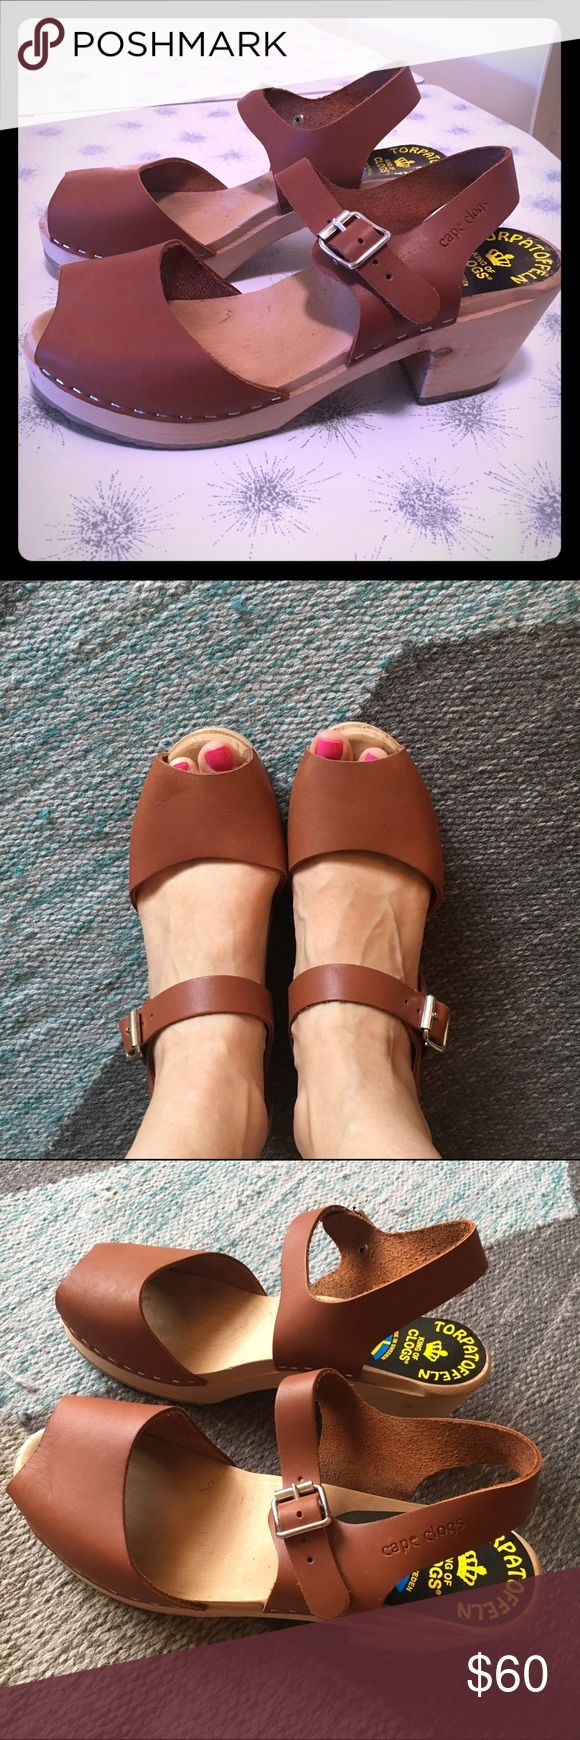 Cognac leather clogs Torpatoffeln/Lotta cognac leather wooden clogs, size  39 (8 1/2). Fits like Swedish Hasbeens, but the leather is super soft. Only worn once. Excellent condition and very comfortable! Gorgeous cognac color. Shoes Mules & Clogs